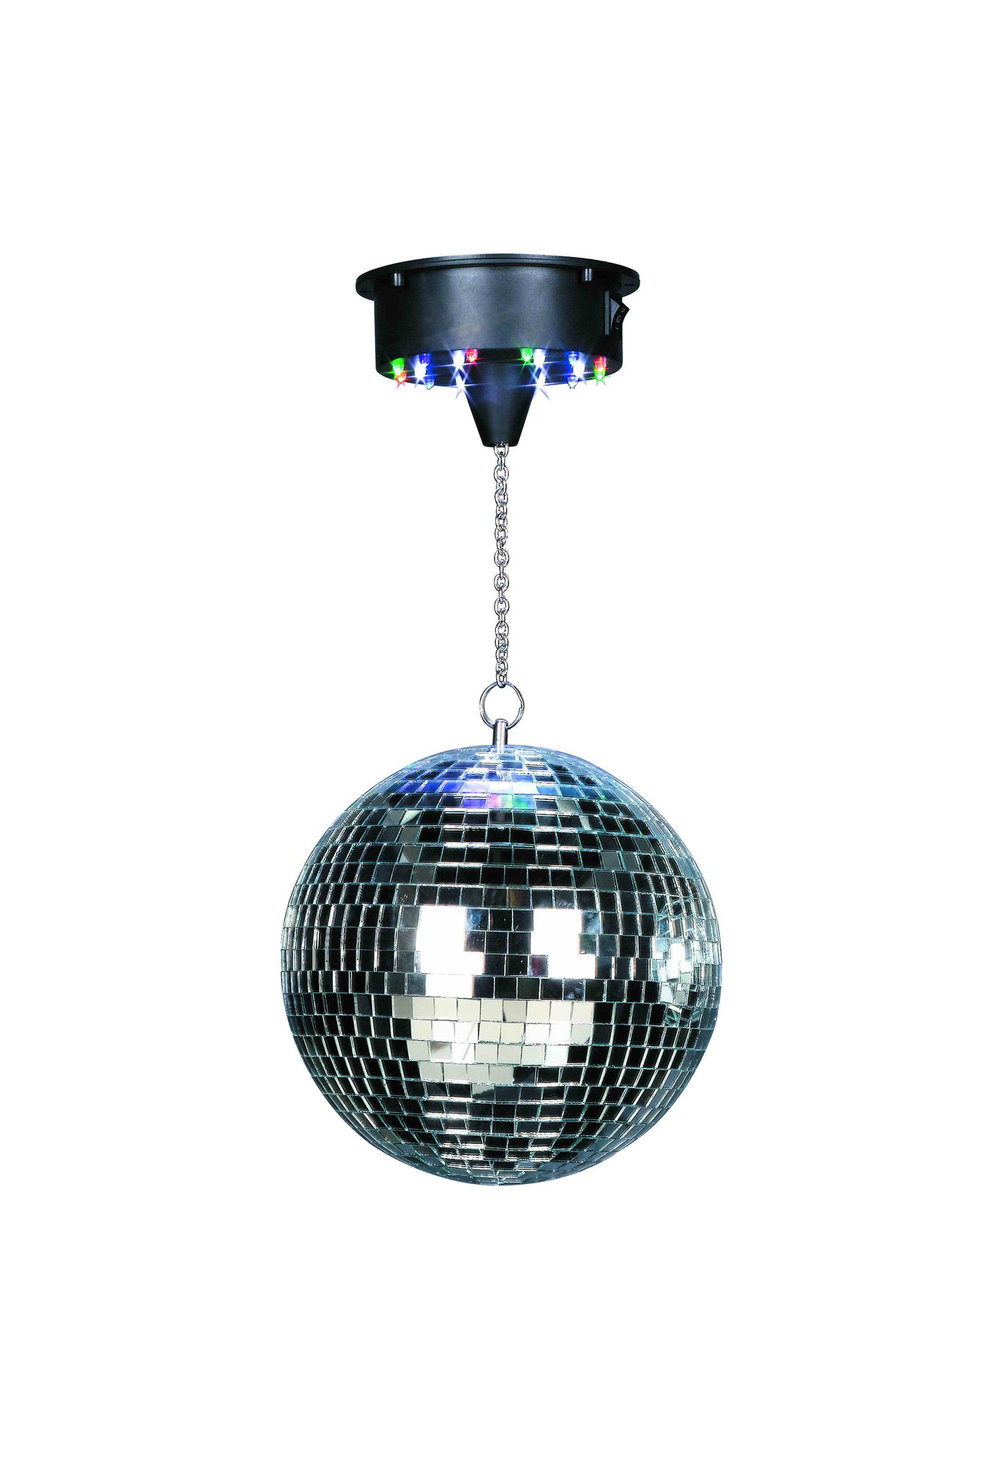 MBK6  LED MIRROR BALL PARTY KIT